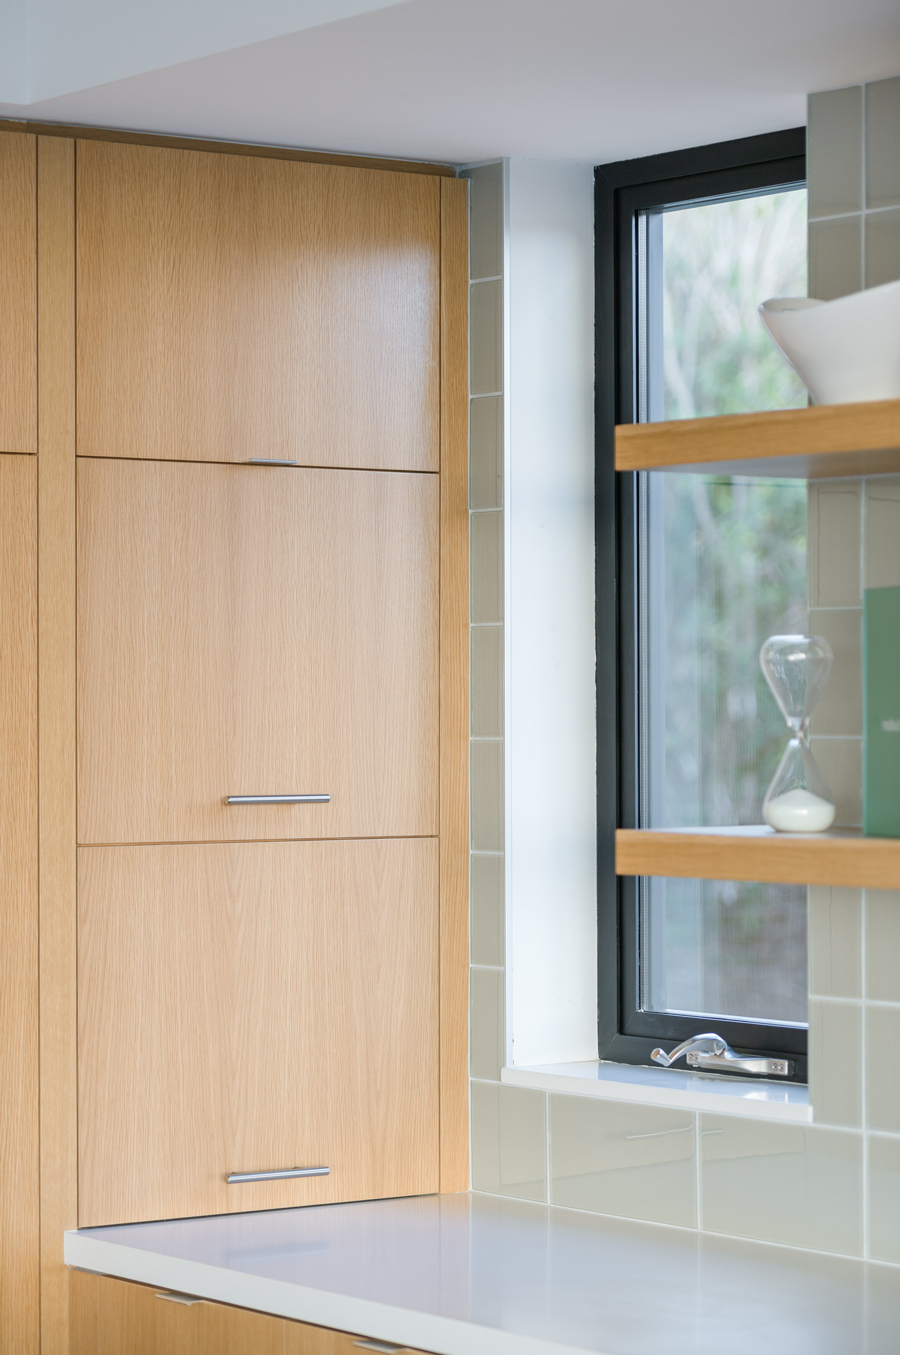 custom cabinetry at kitchen window